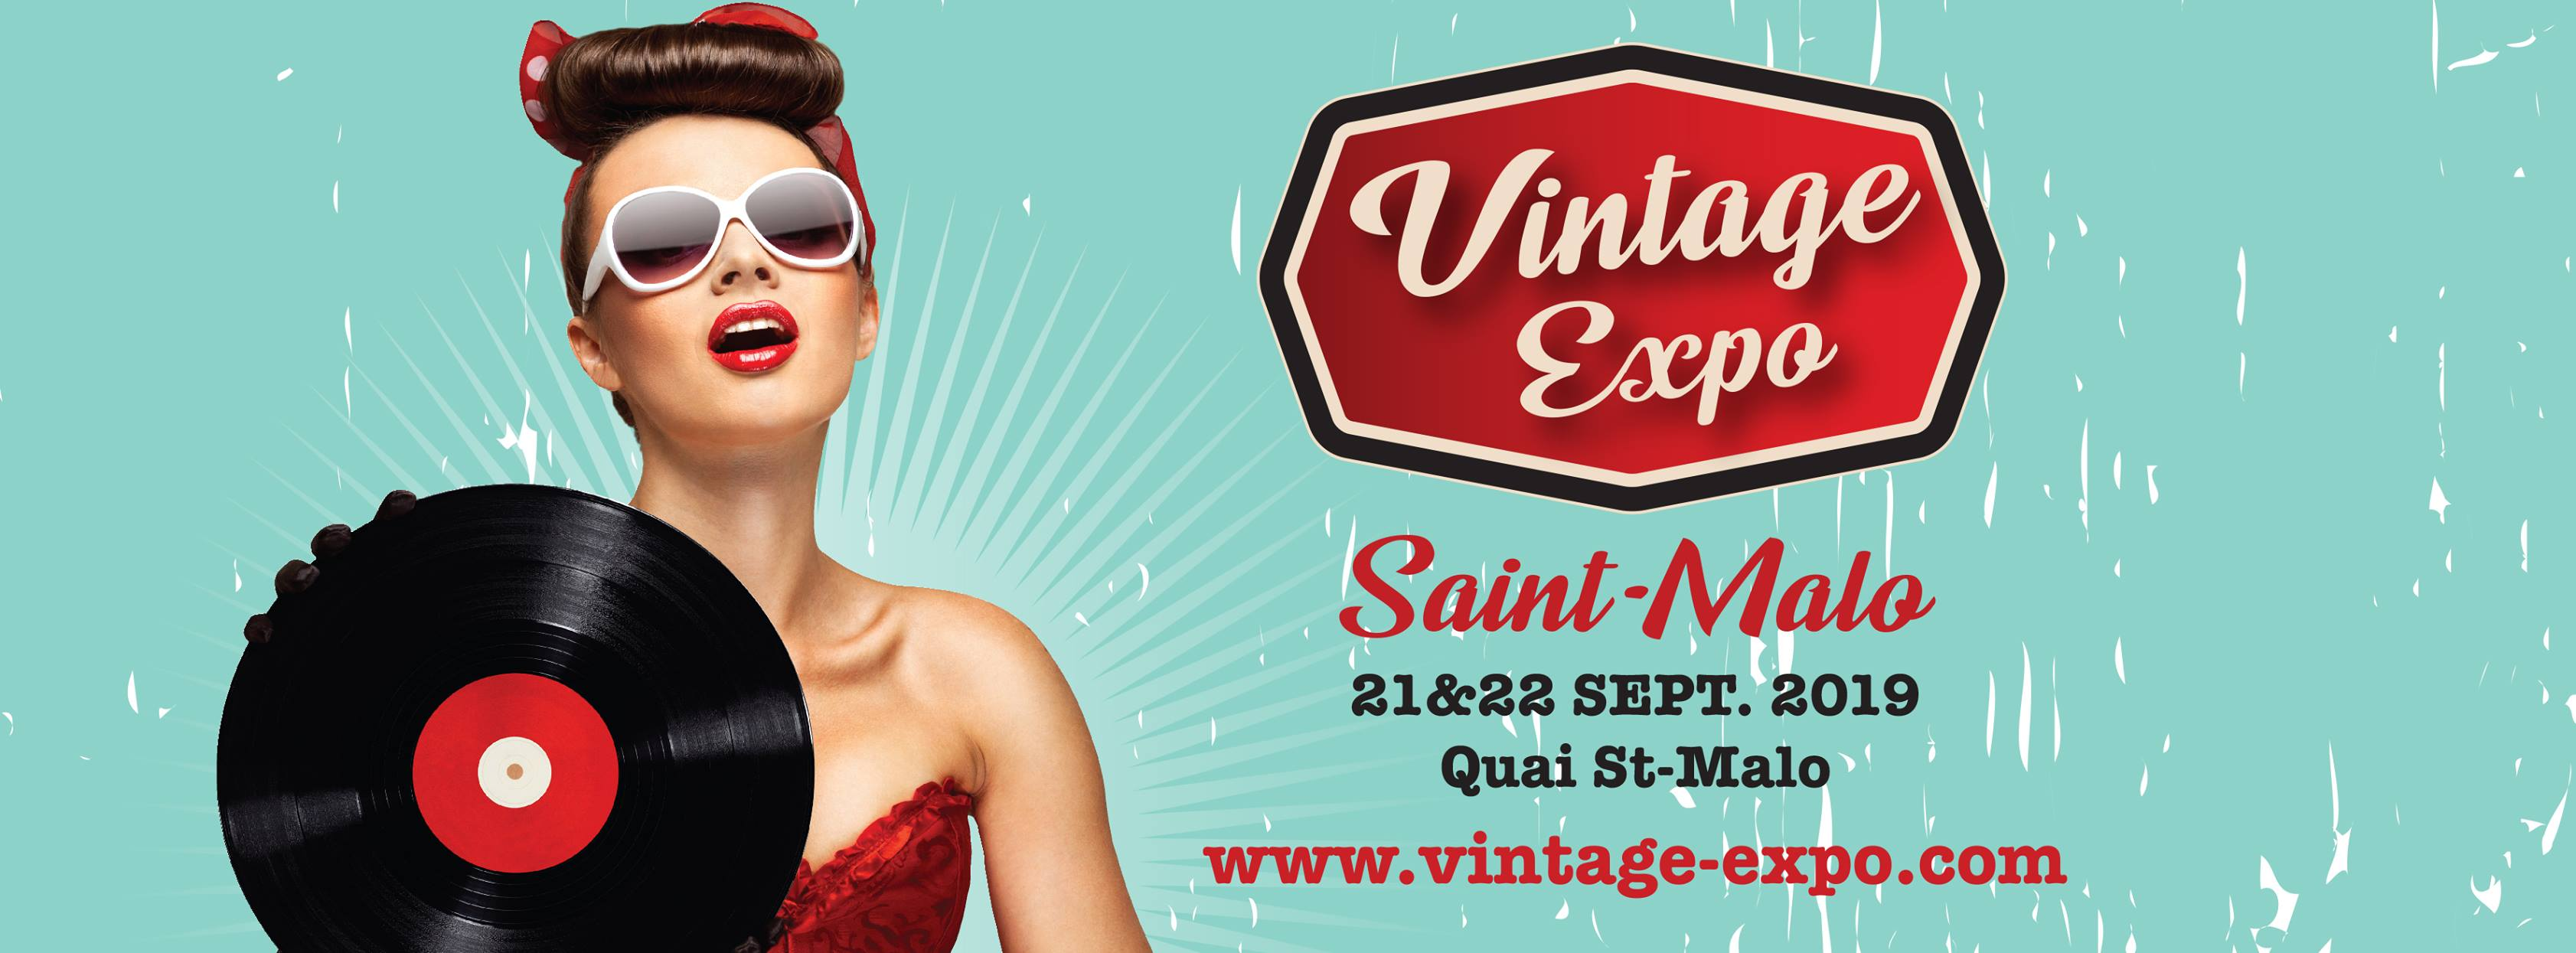 vintage-expo-saint-malo-pin-up-tatouage